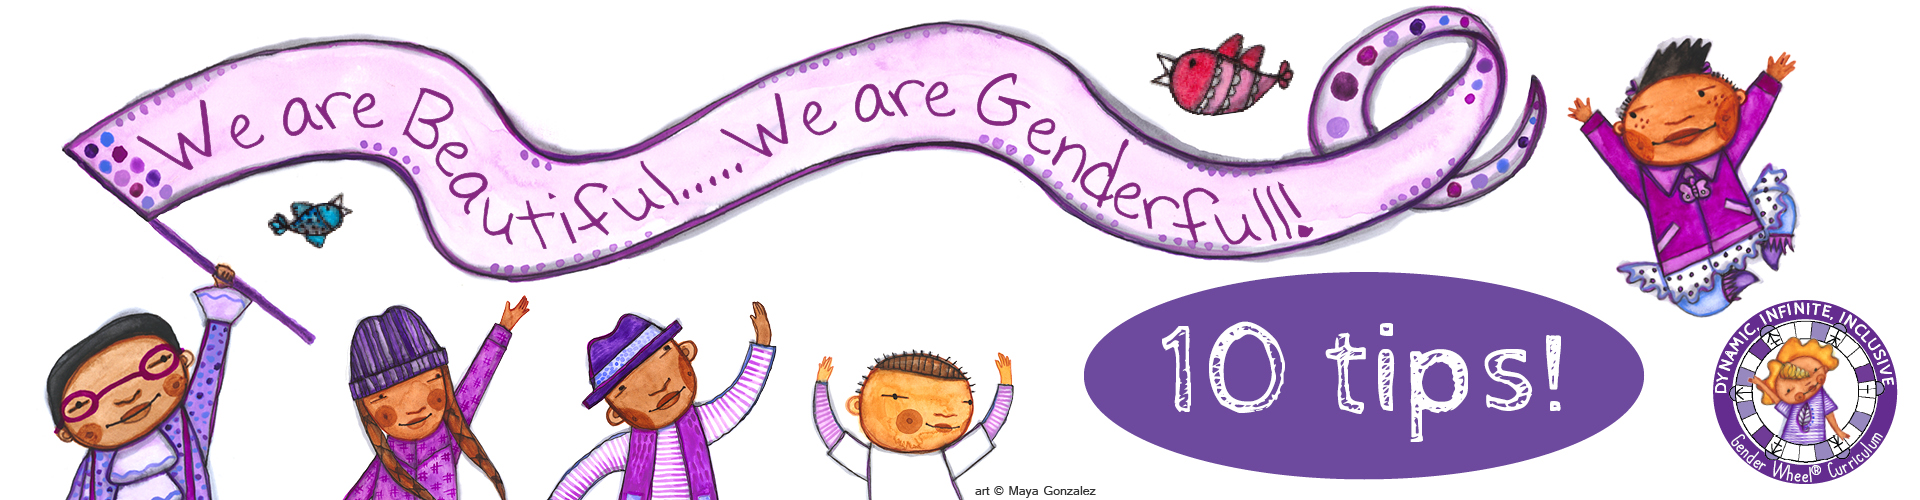 We are Beautiful - We are Genderfull - The Gender Wheel Curriculum